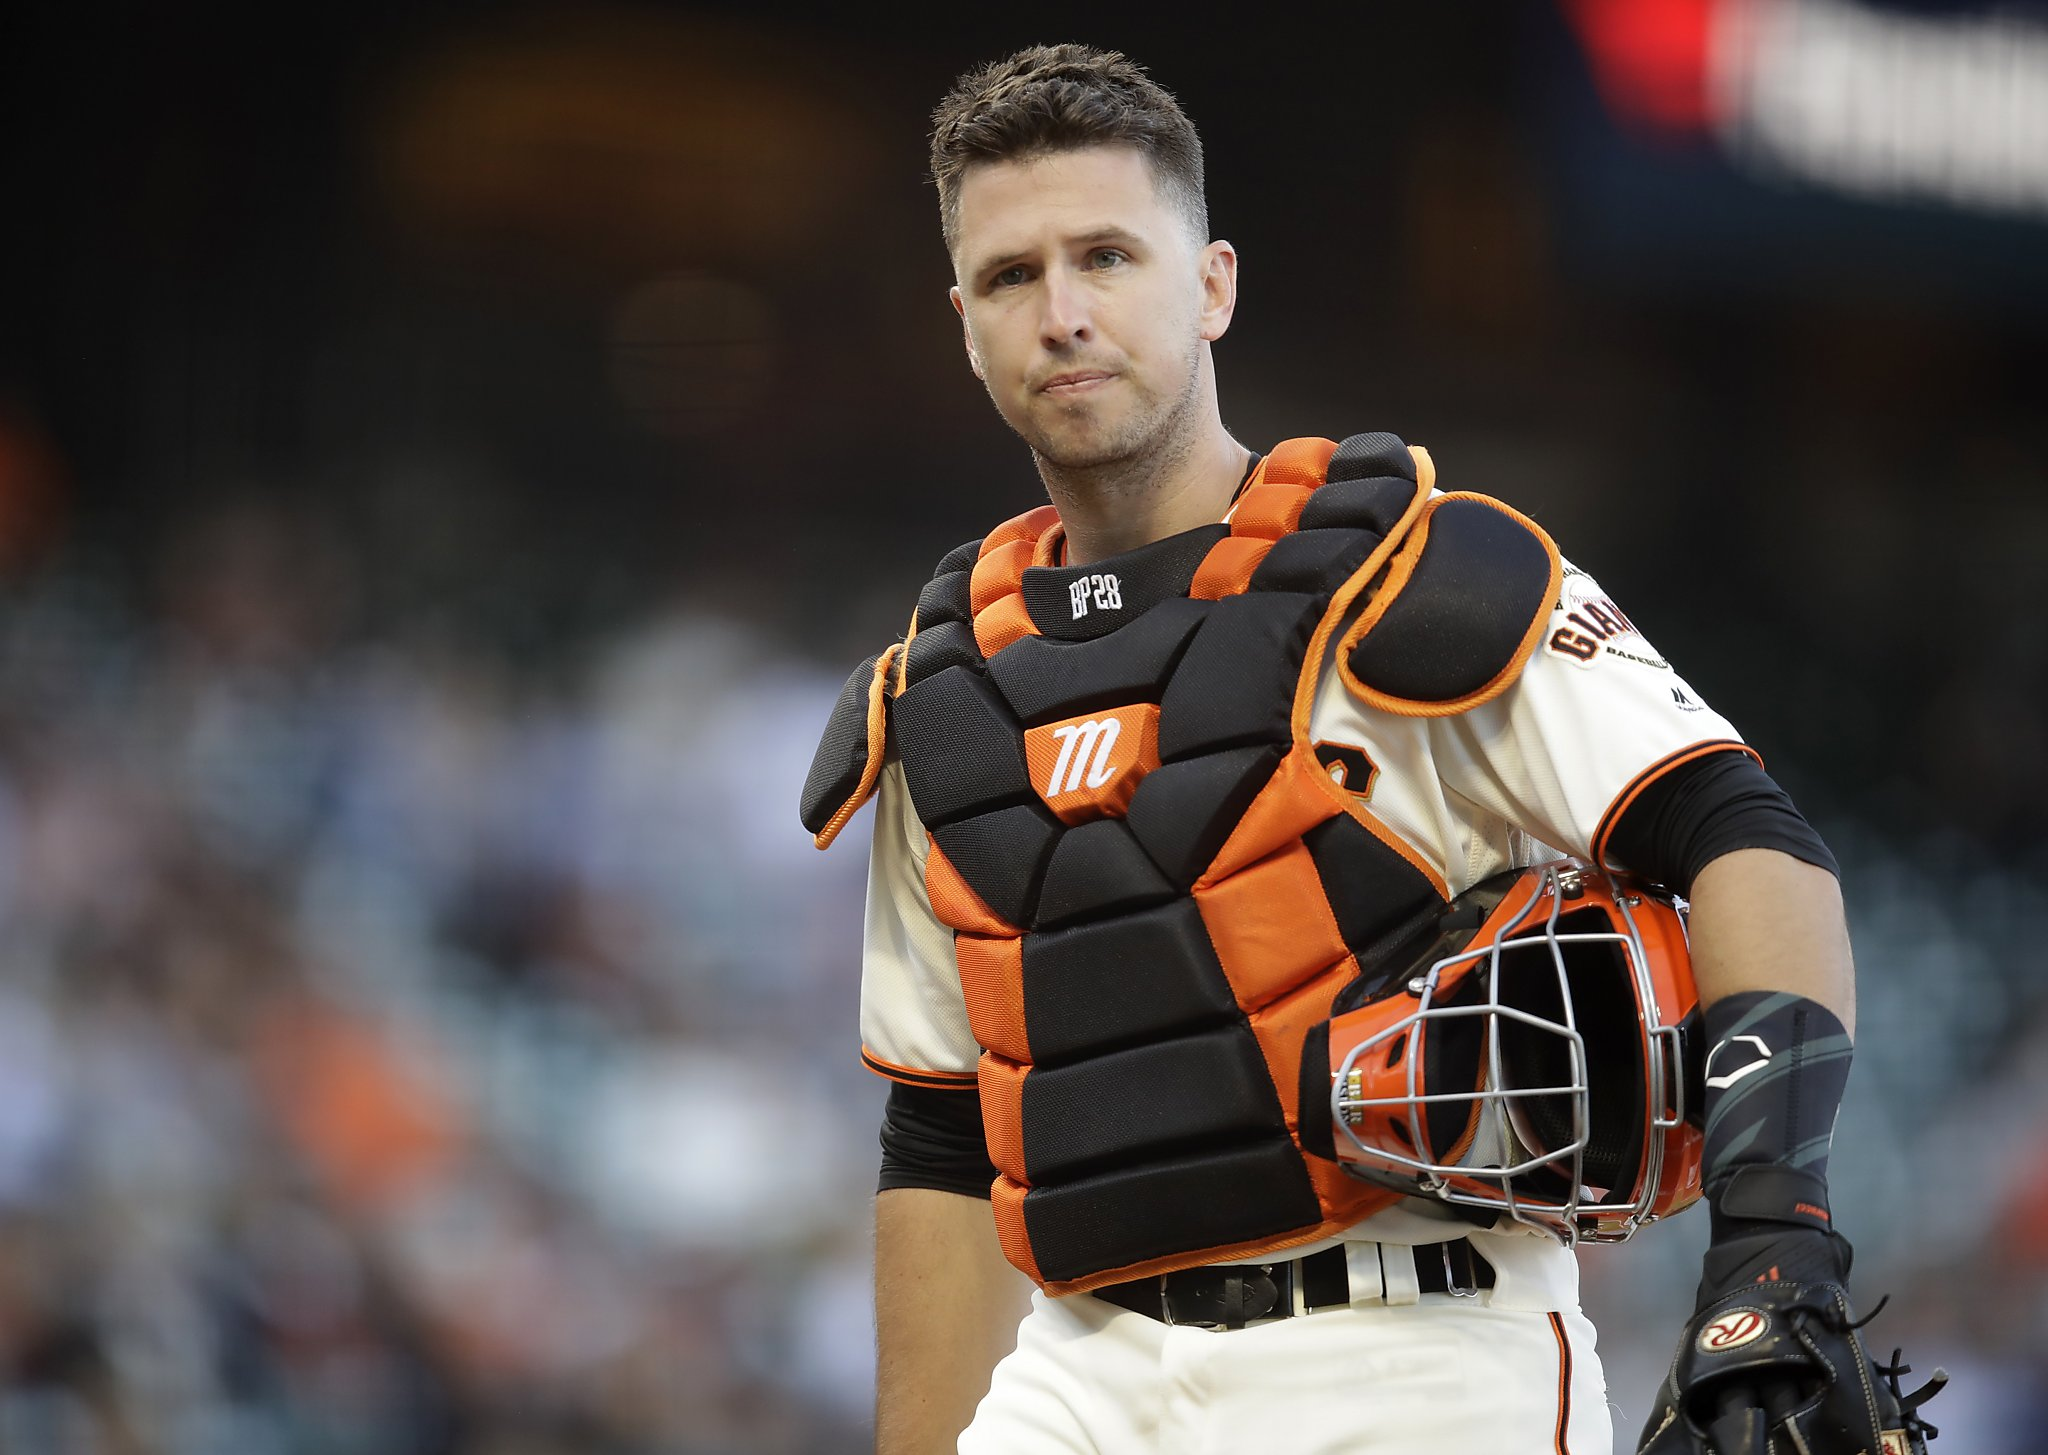 San Francisco Giants catcher Buster Posey without mask.